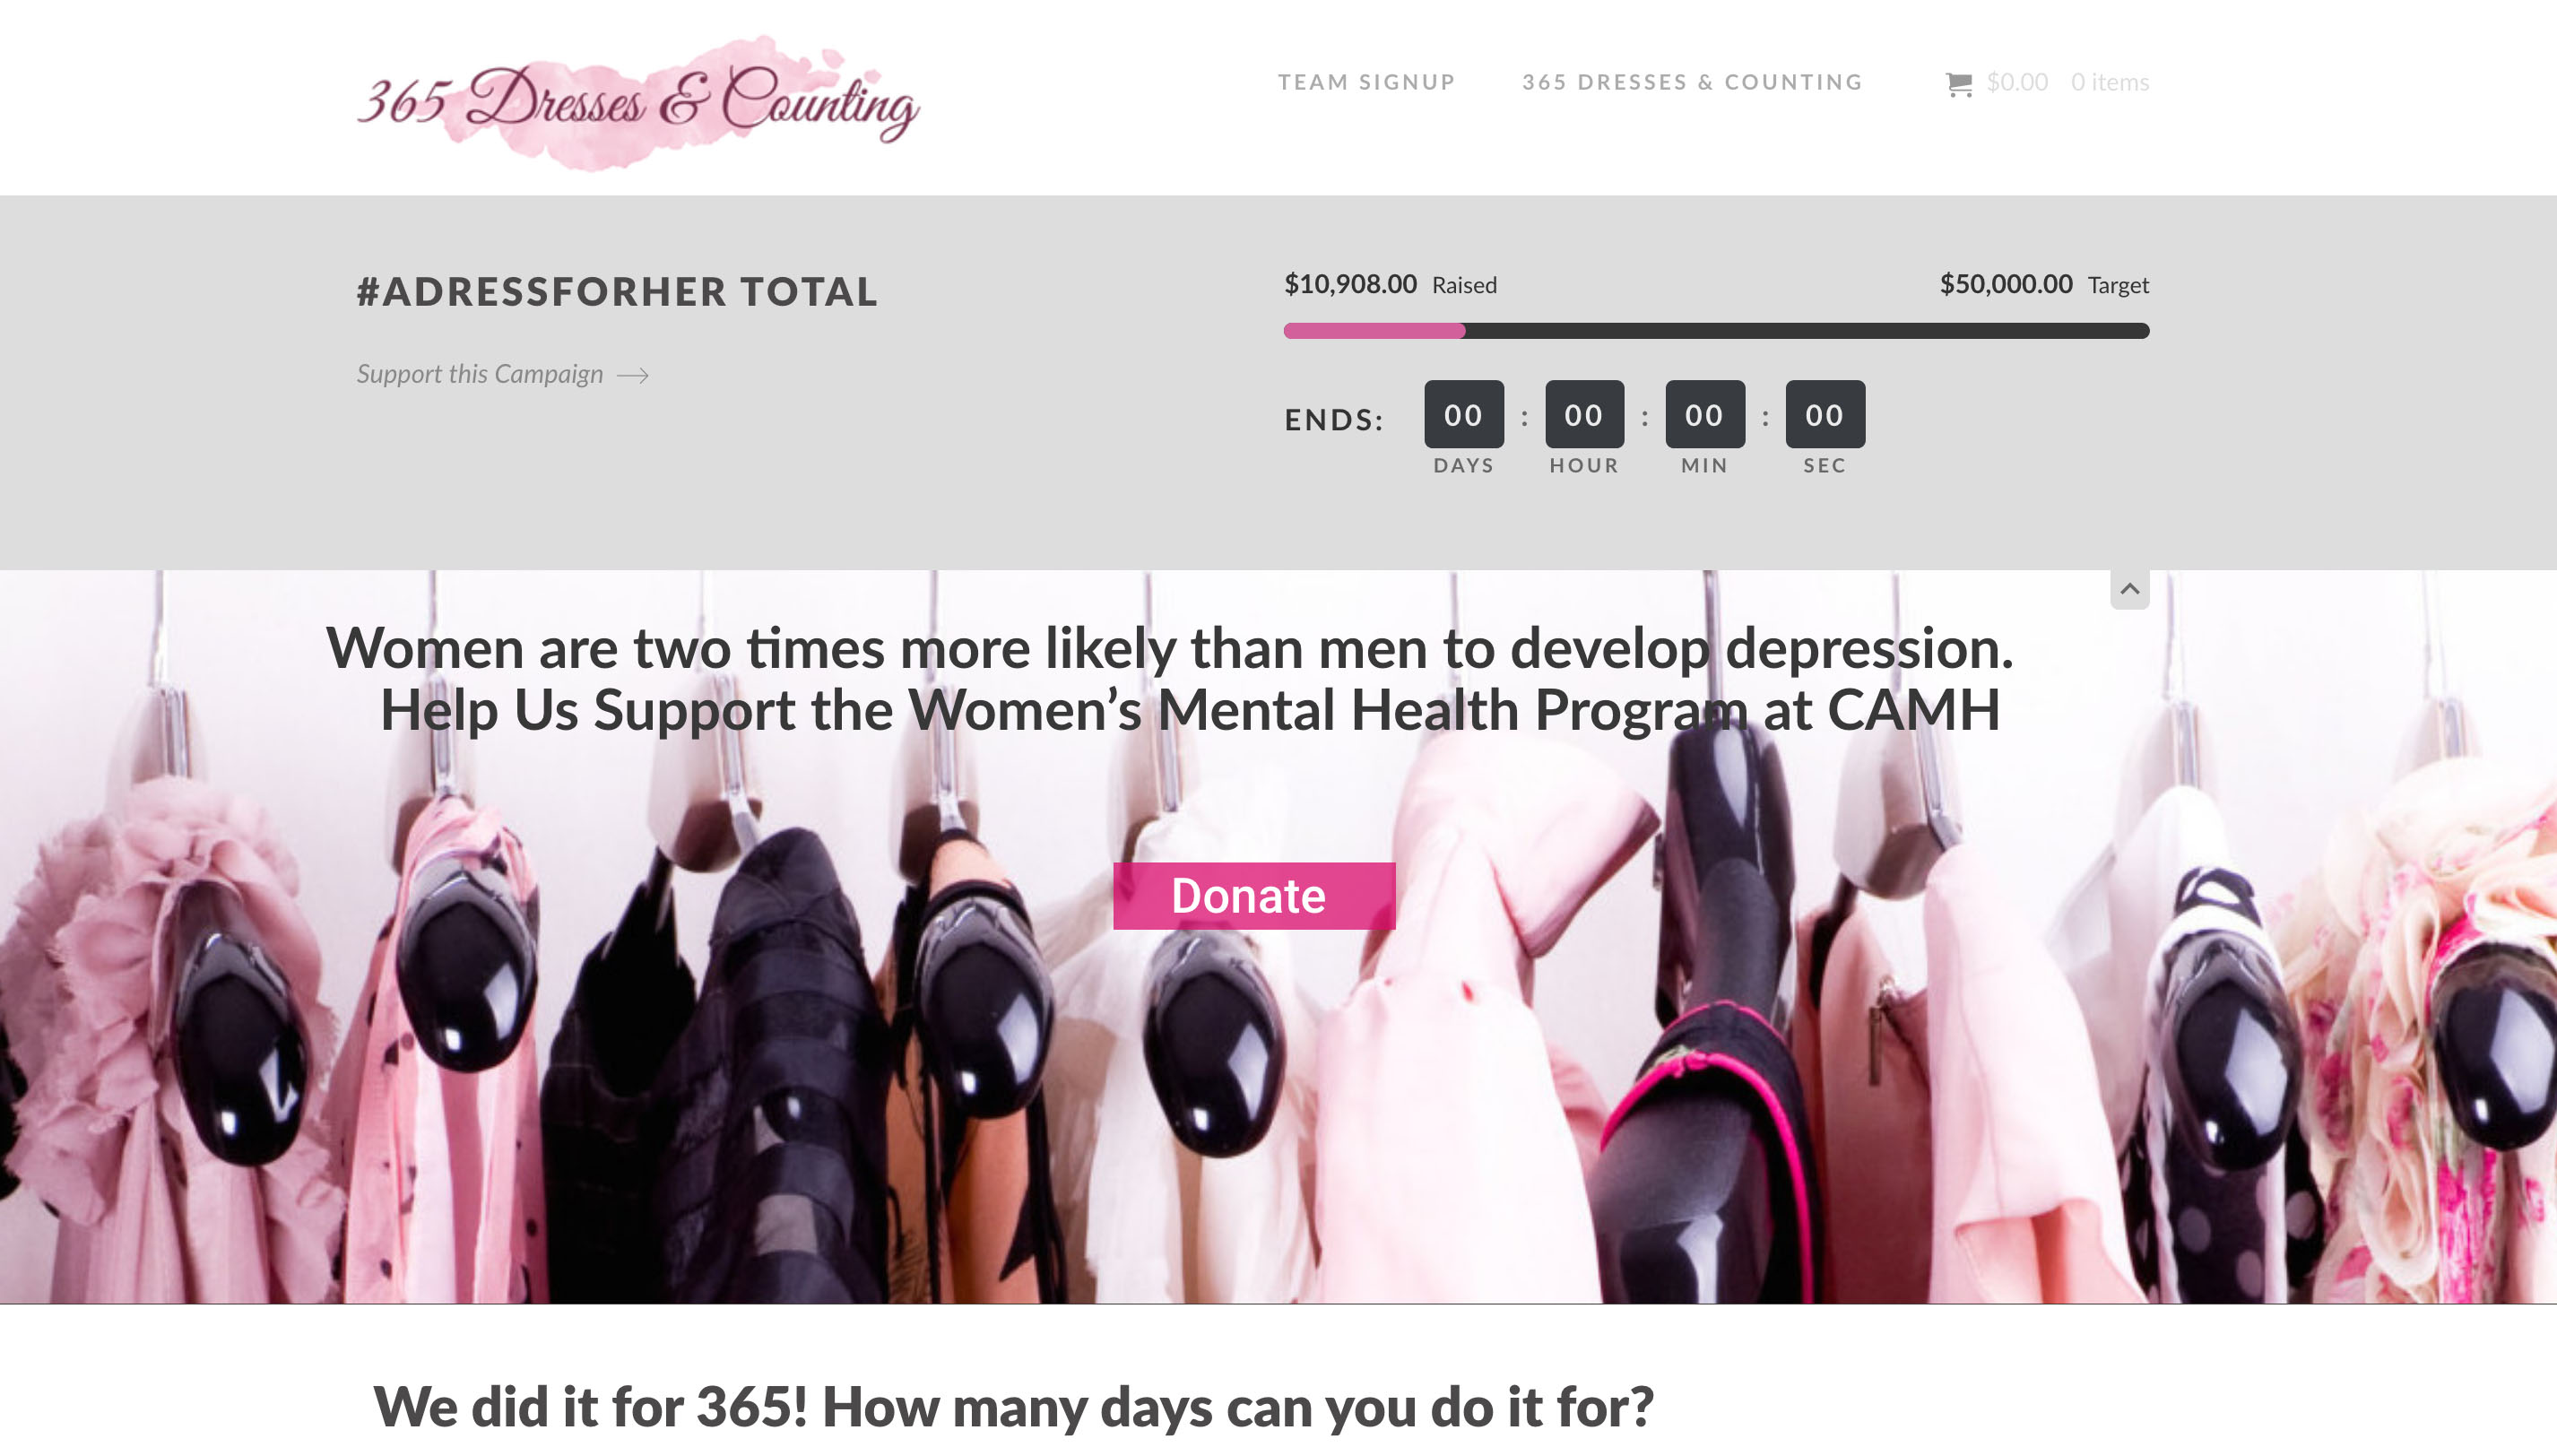 Charity - 365 Dresses - Hilborn Digital Website Design